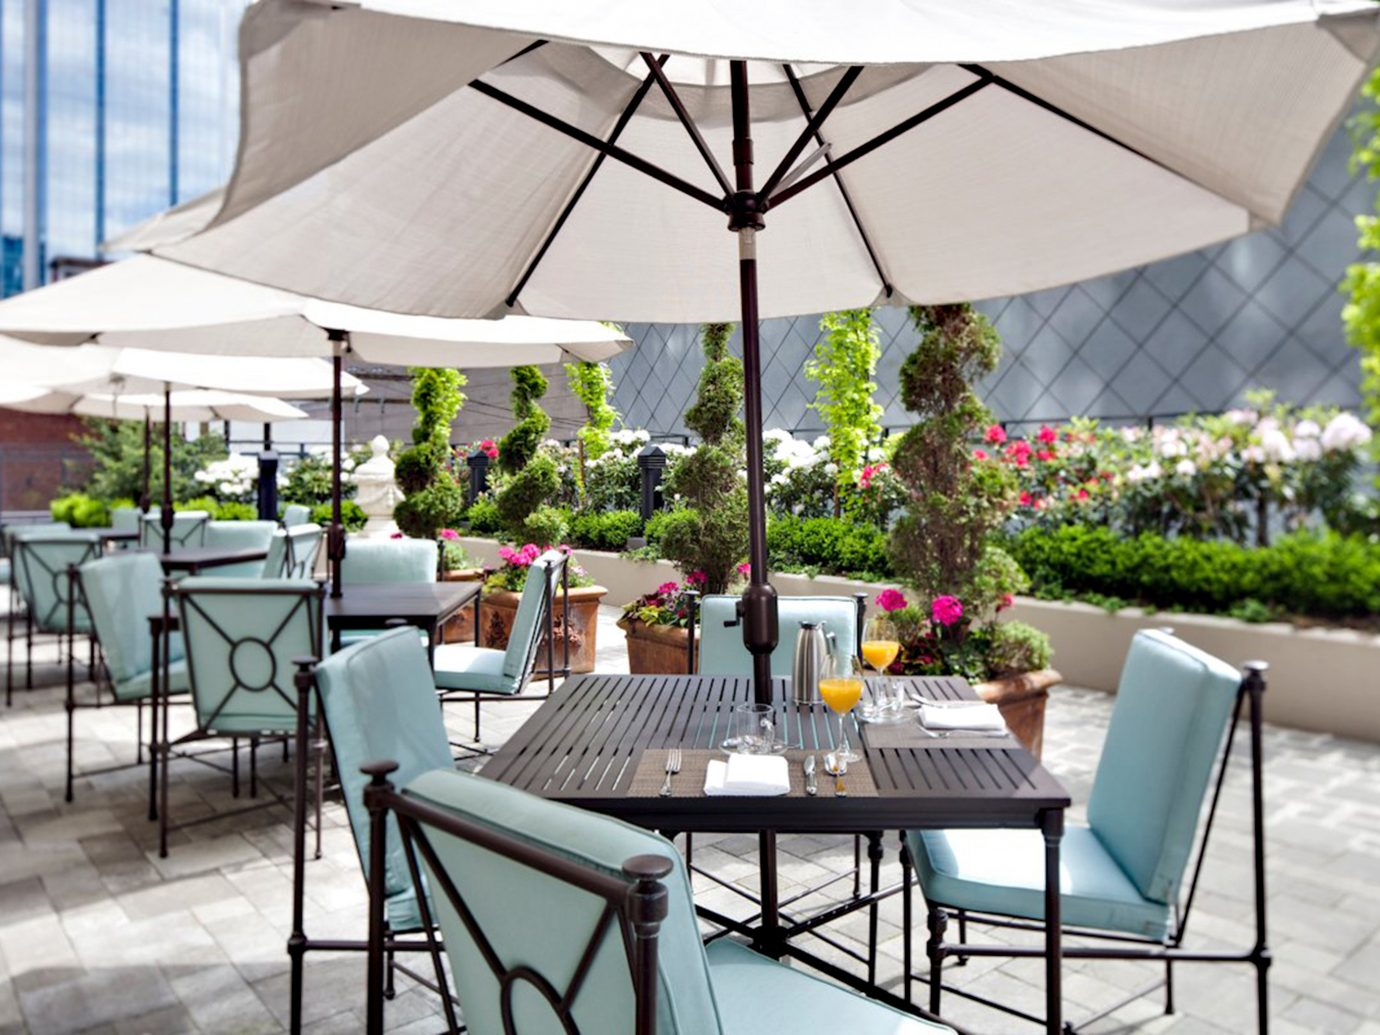 Boutique Classic Dining Drink Eat Hotels Luxury Outdoors Patio table chair backyard outdoor structure umbrella area